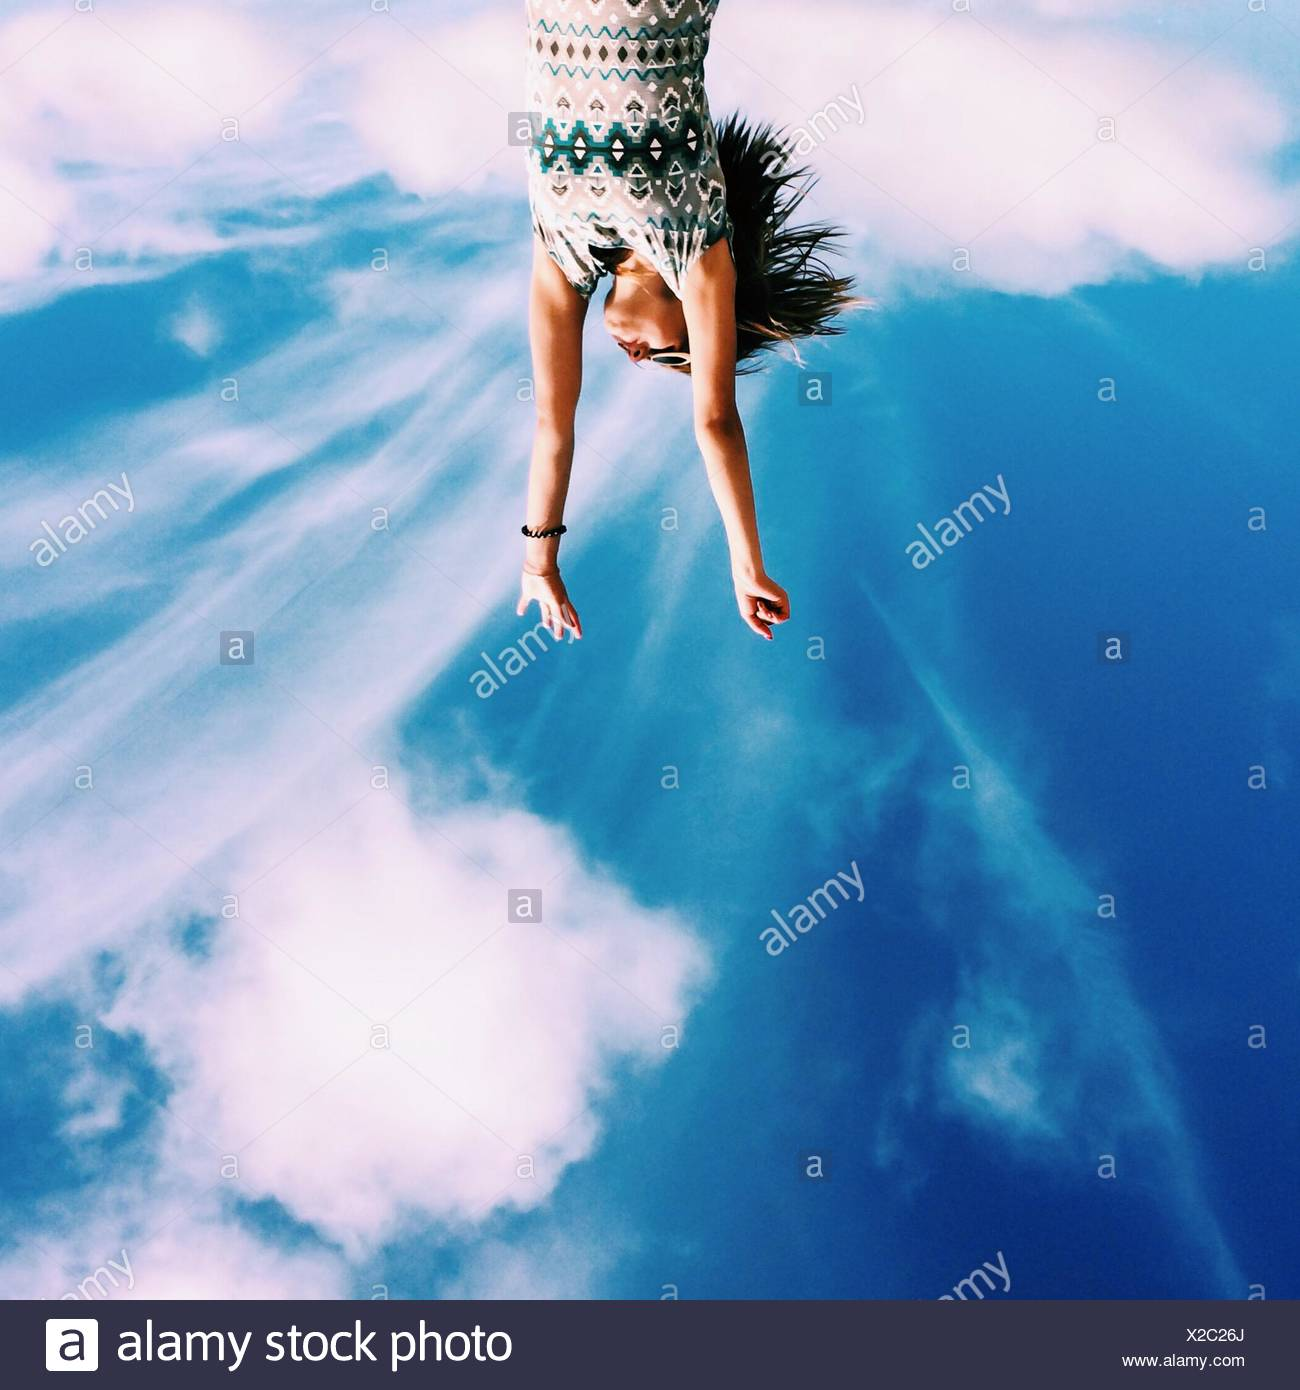 Upside Down Image Of Young Woman With Arms Raised Against Sky - Stock Image